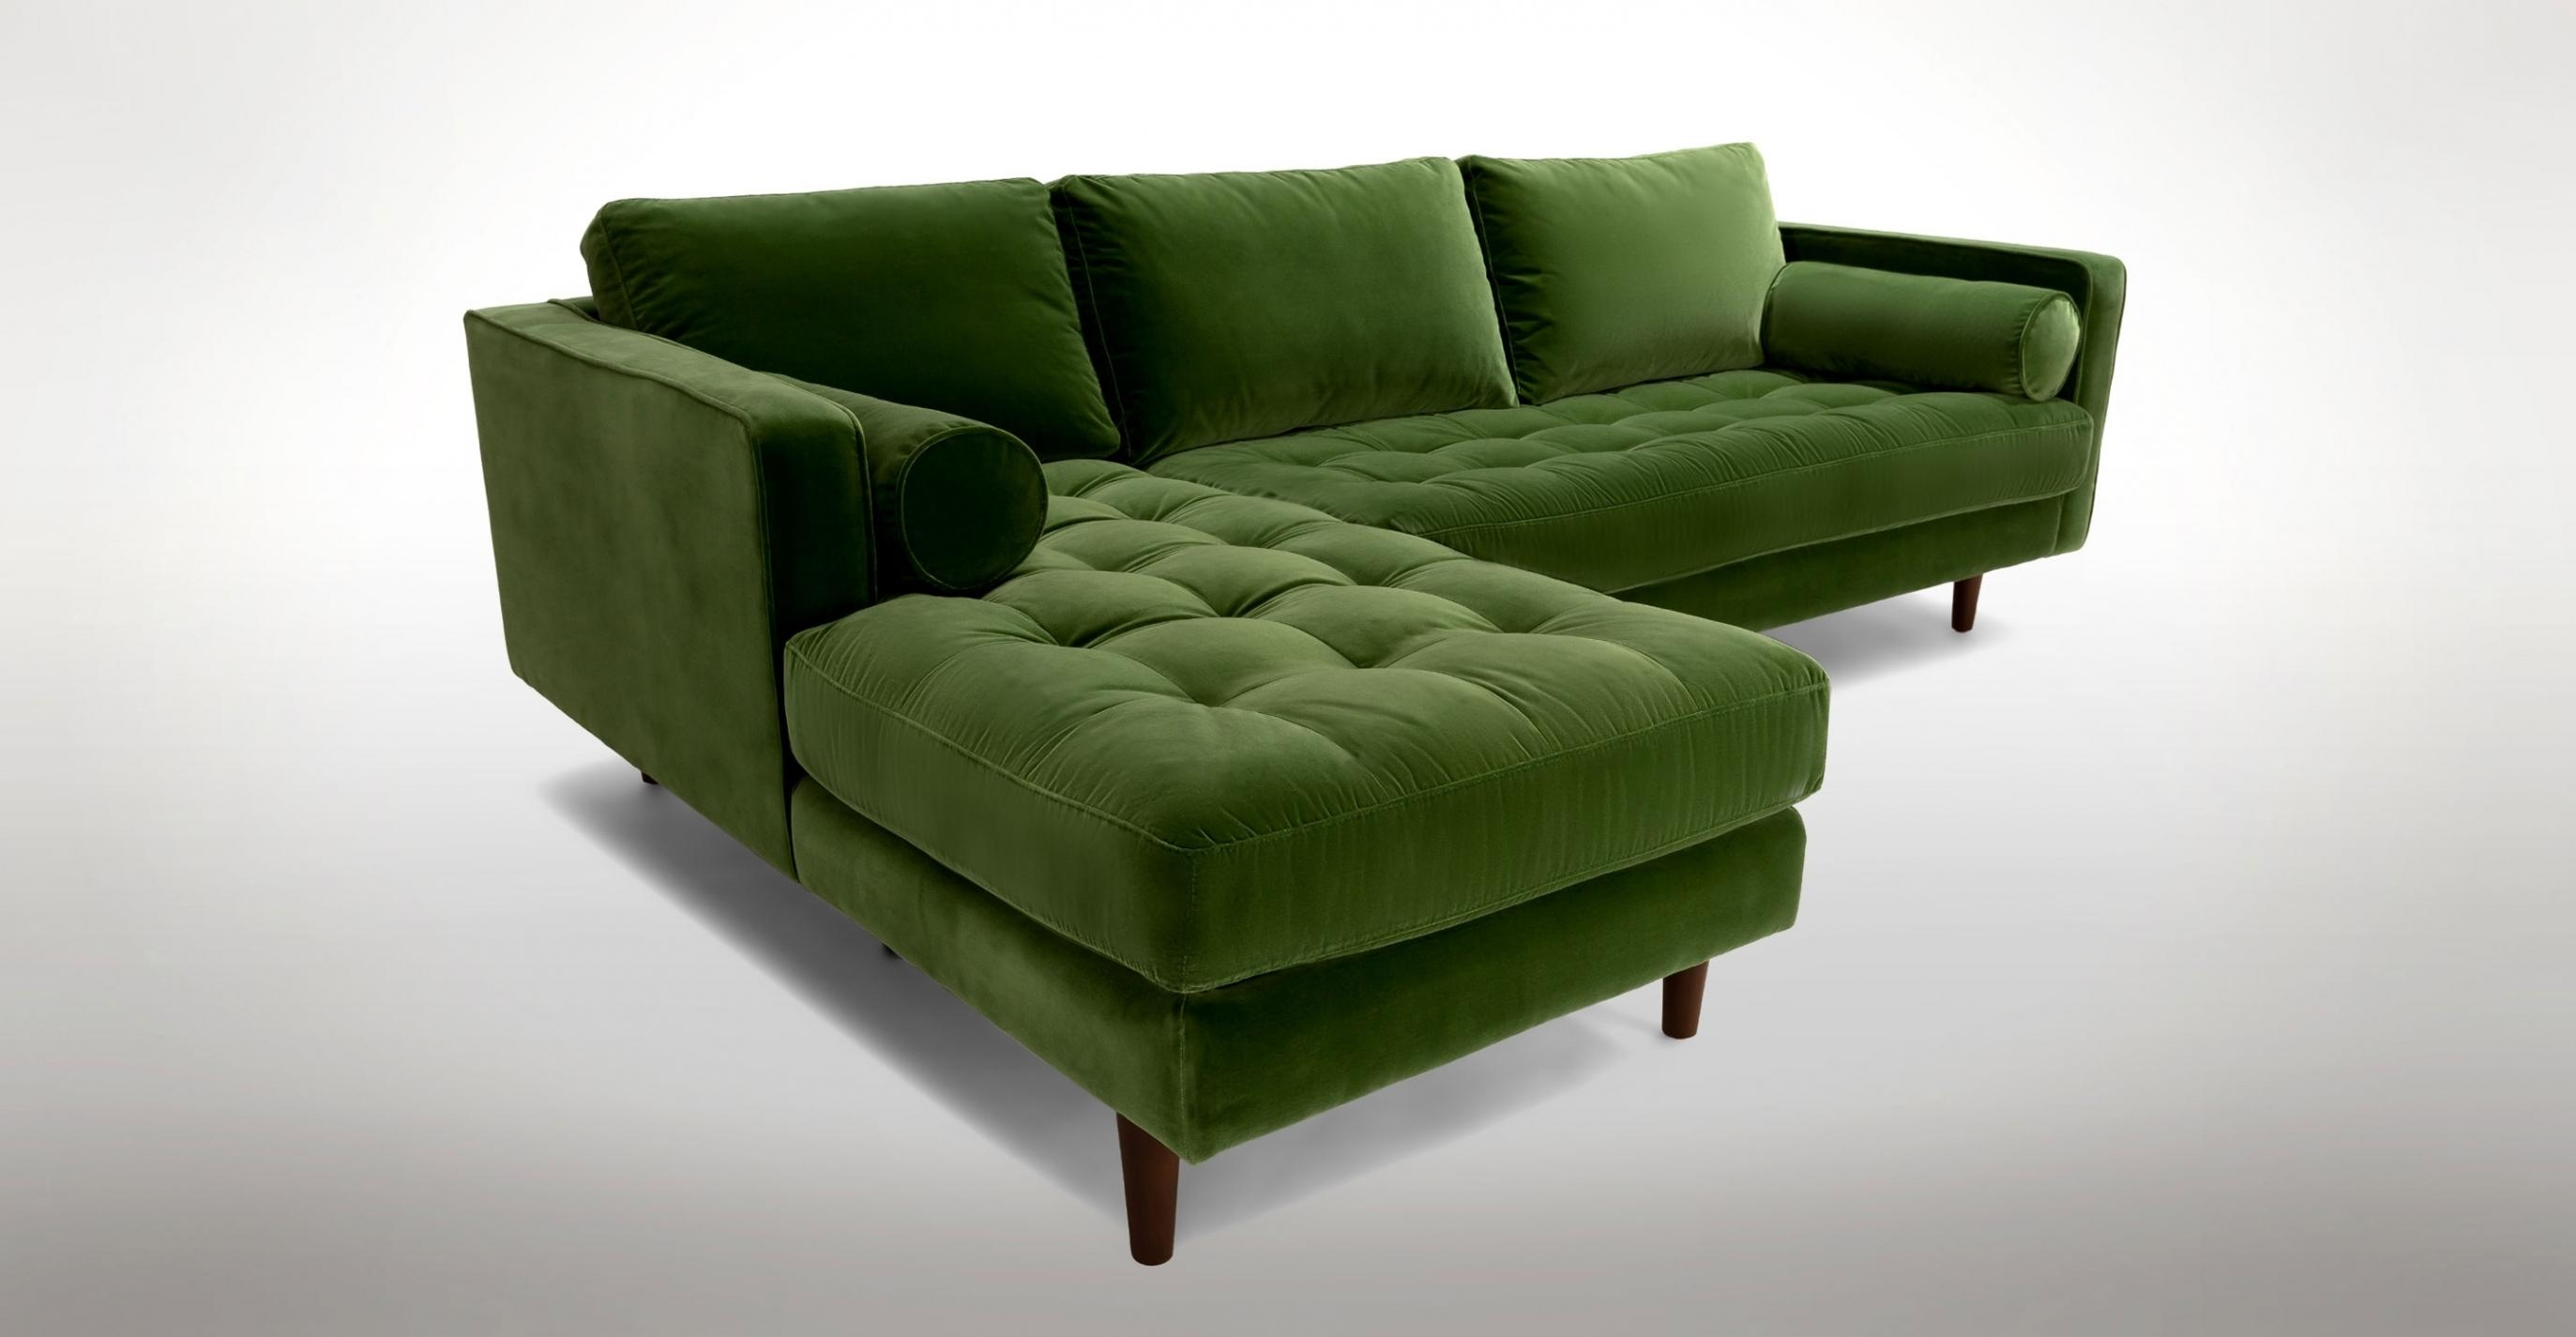 Green Settee 15 43 Choices Of Green Sectional Sofa With Chaise Sofa Ideas